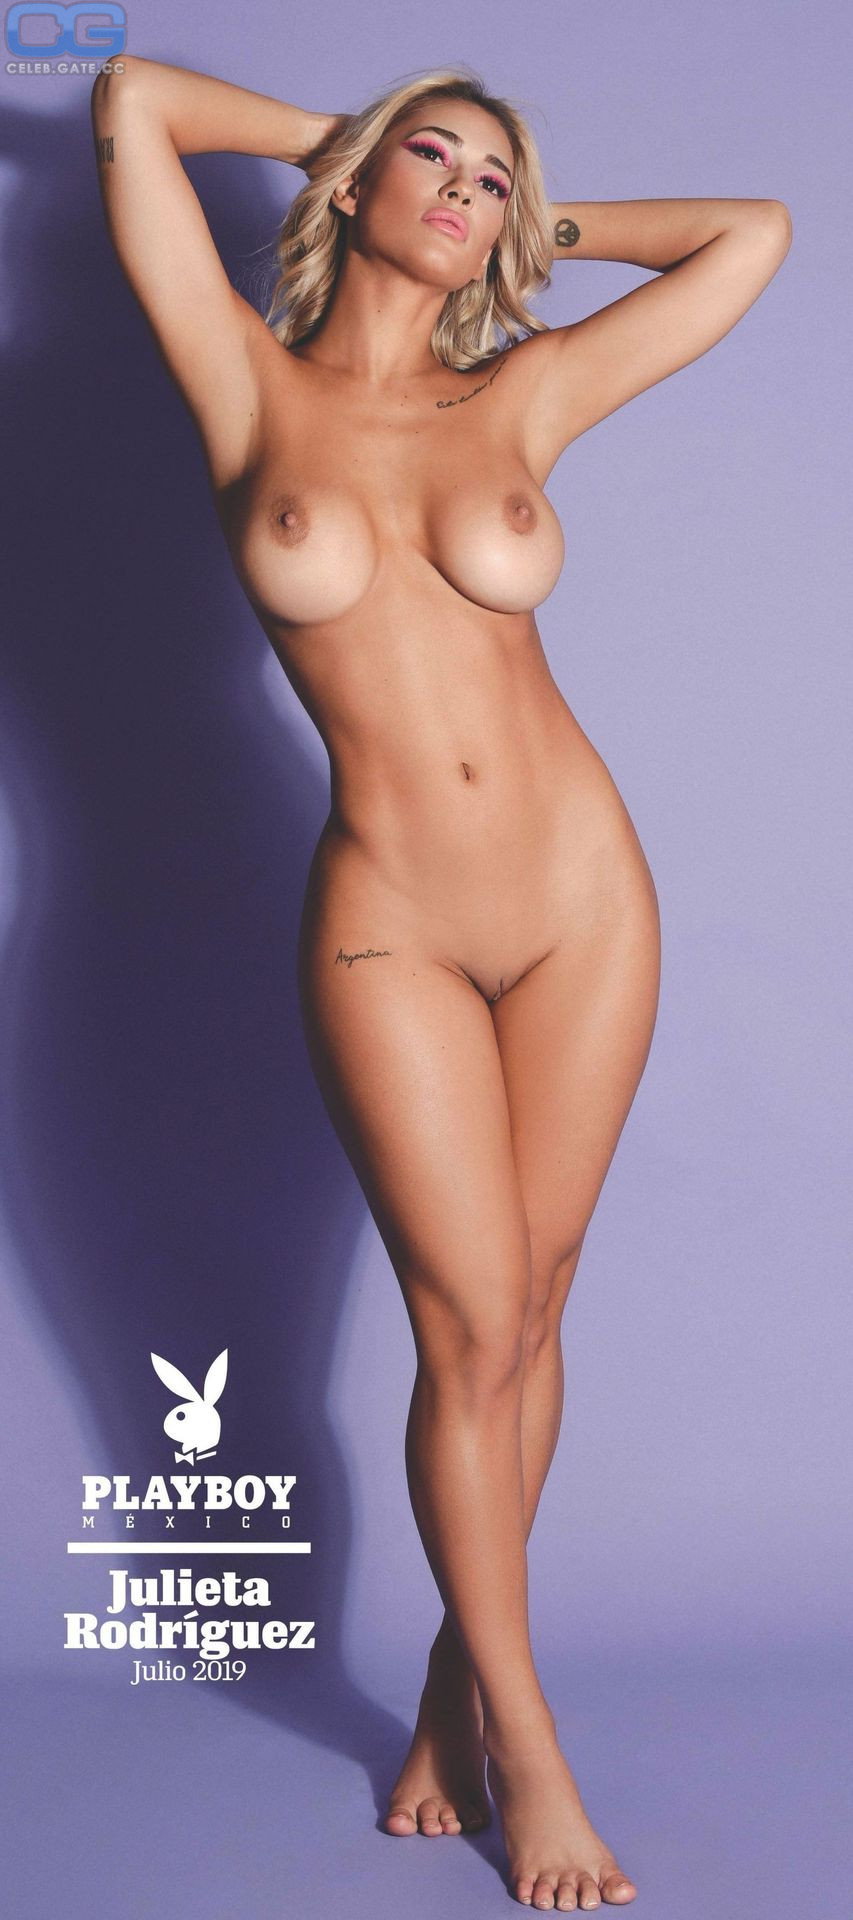 Topless Celebrity Playboy Nudes Pic